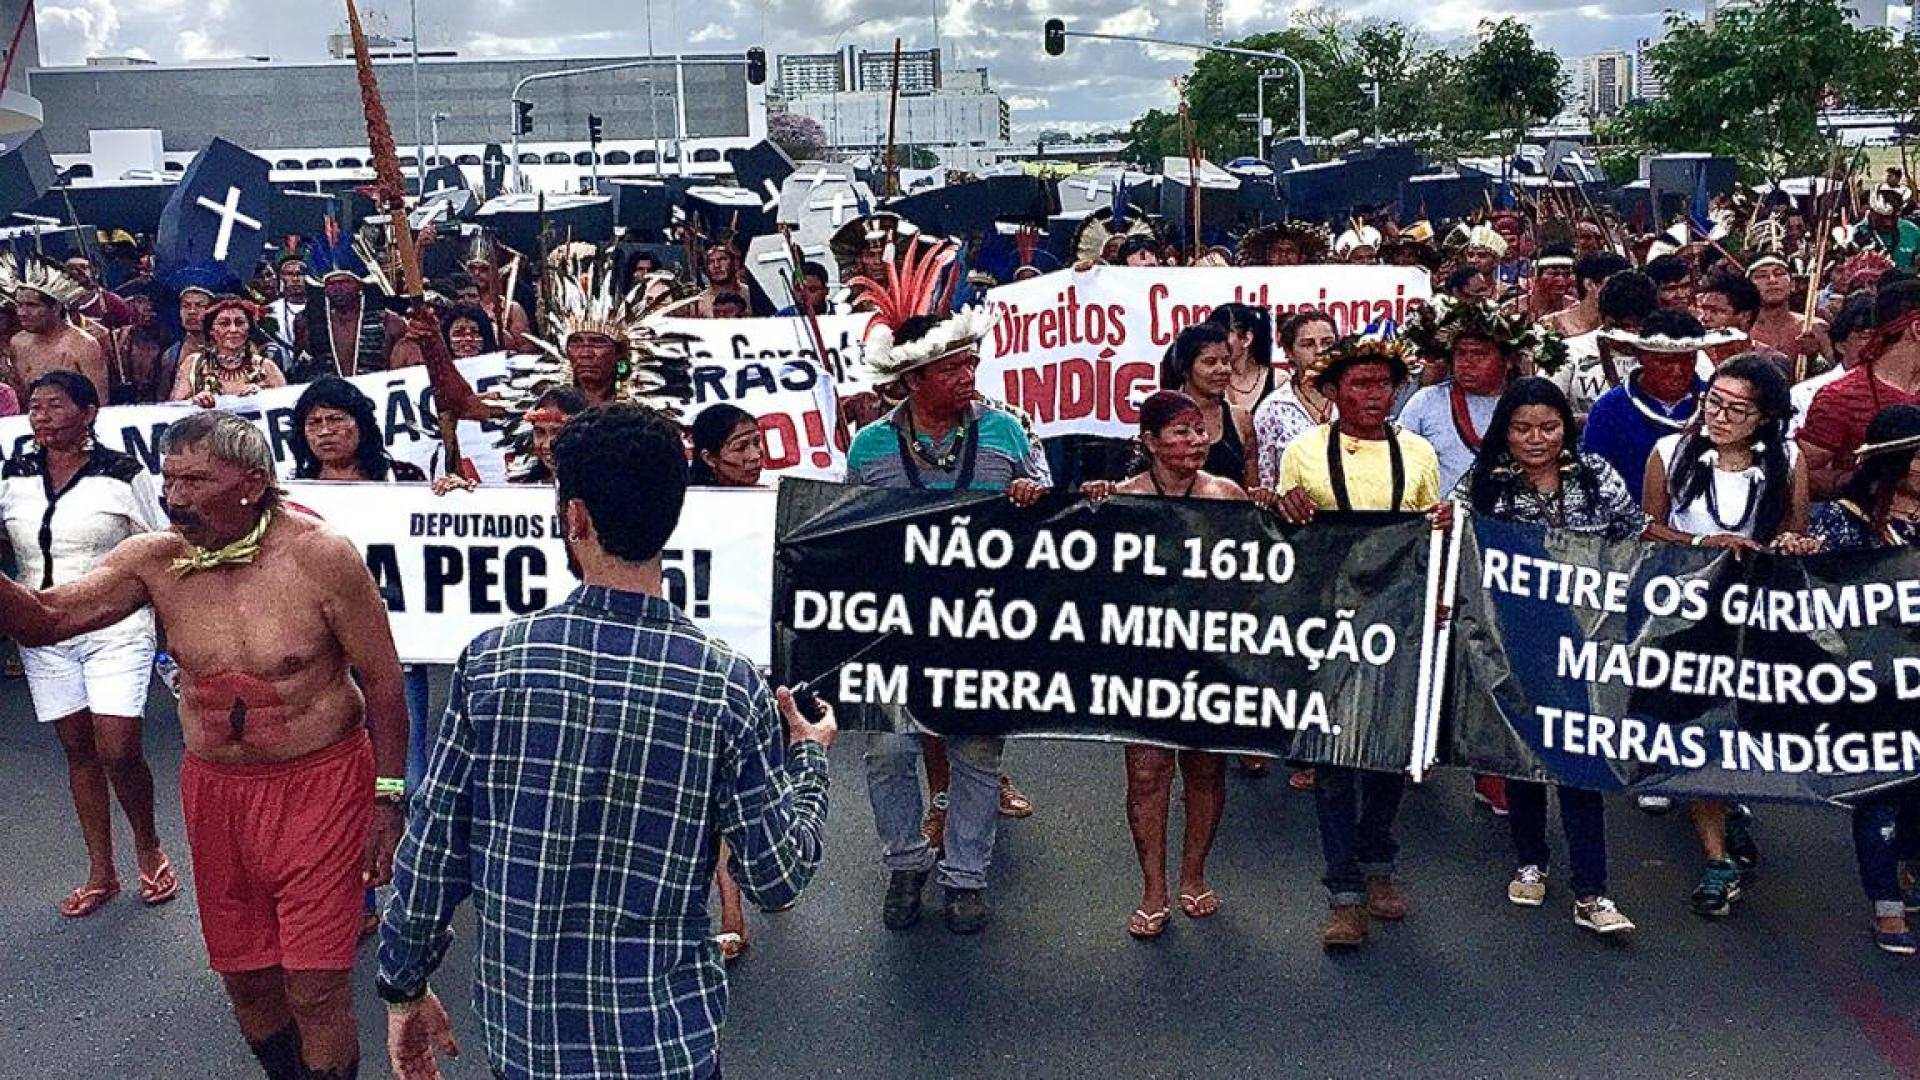 Indigenous groups demonstrate against changes to the laws protecting their territory